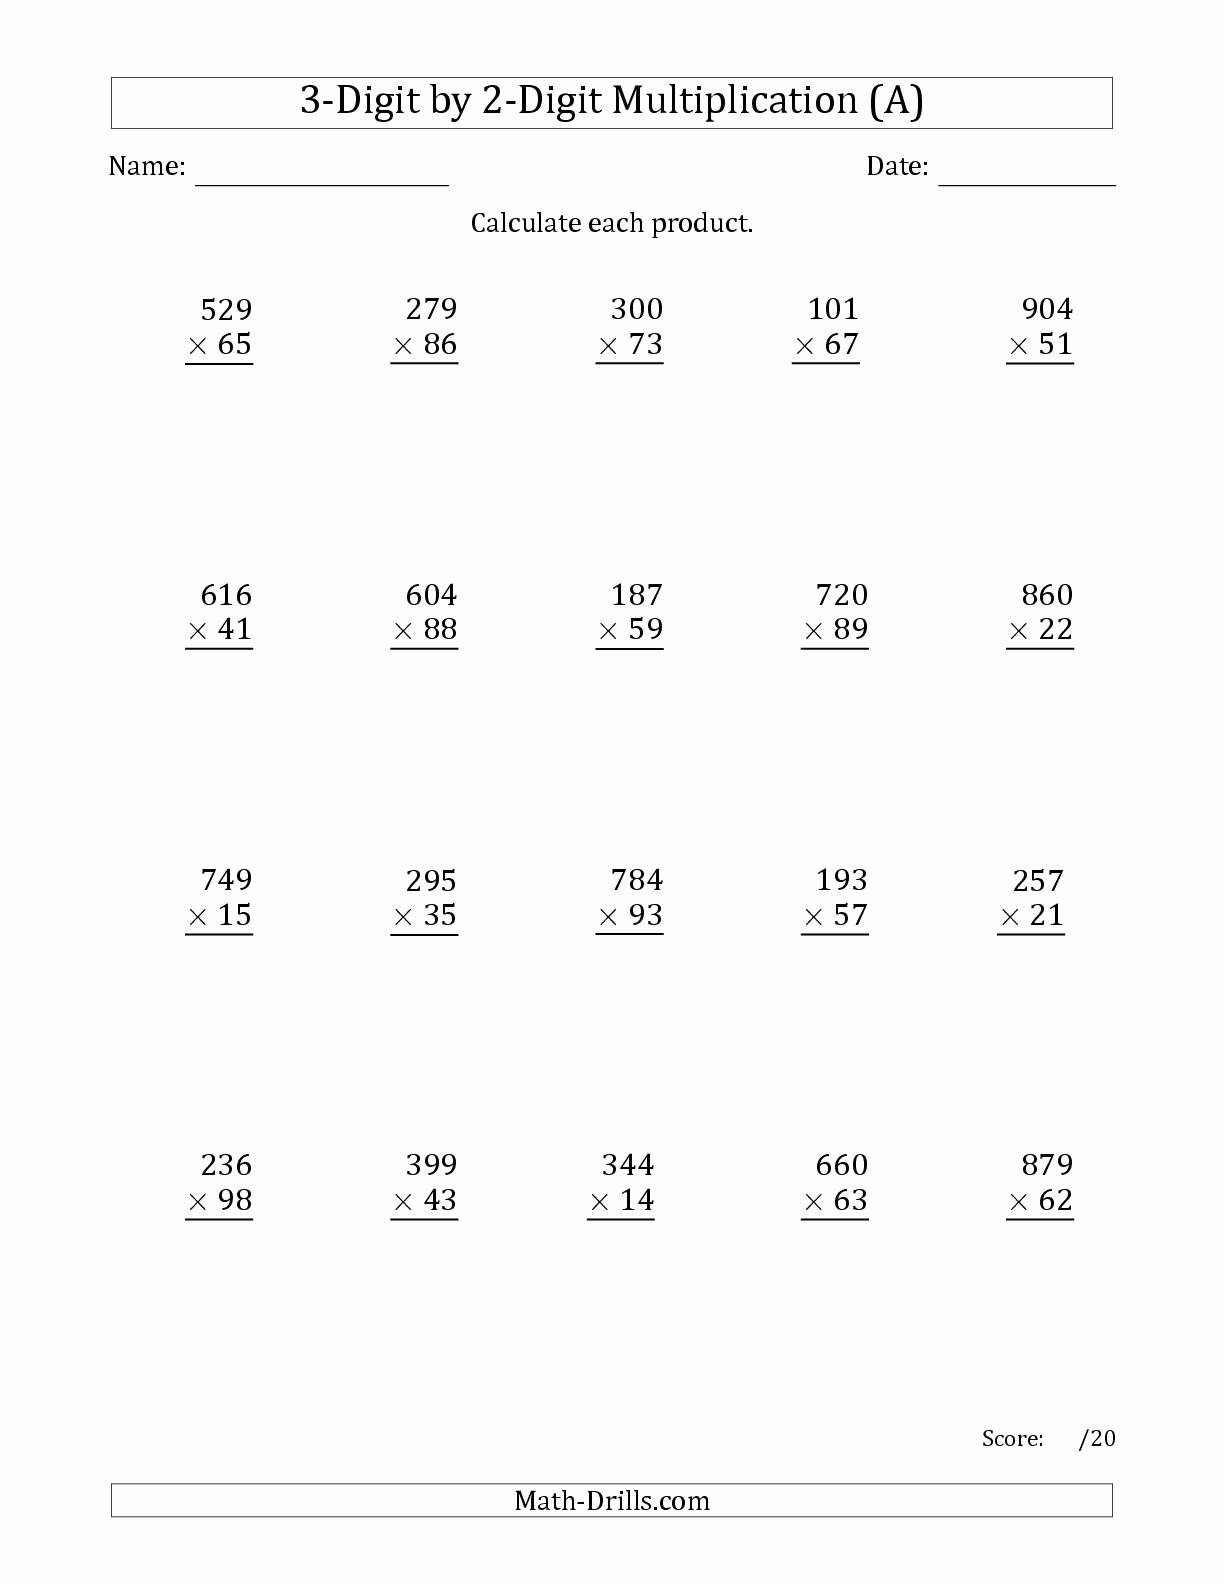 3 Digit by 3 Digit Multiplication Worksheets Unique the Multiplying 3 Digit by 2 Digit Numbers A Math